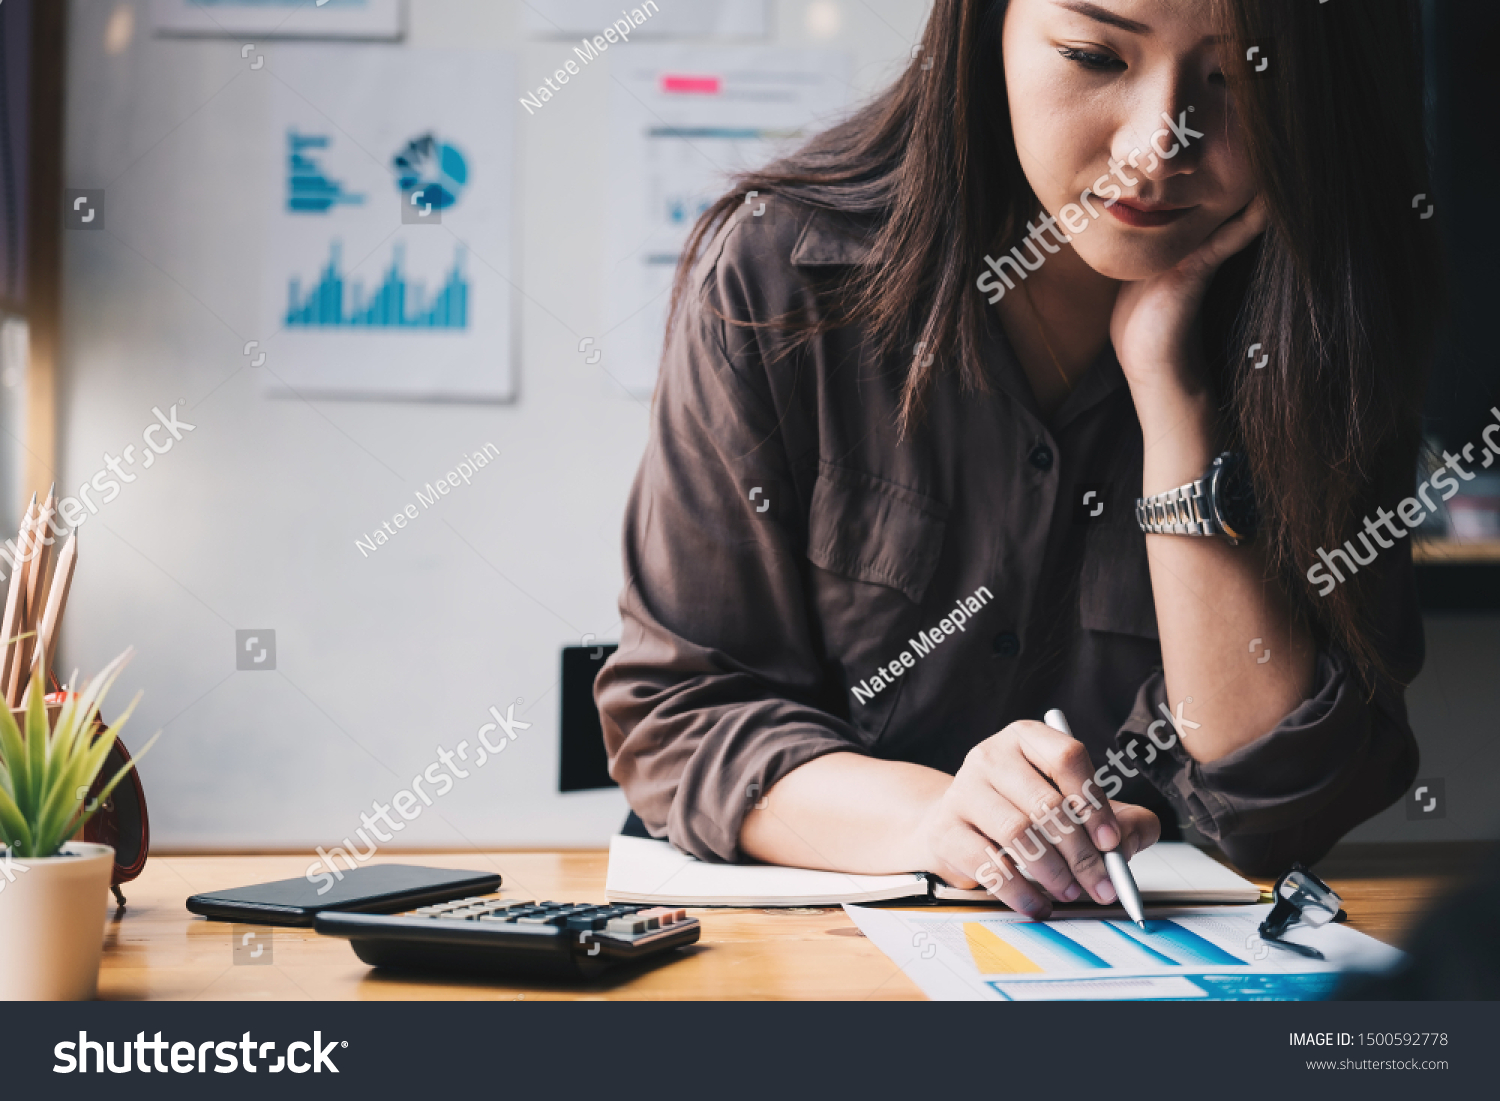 Business woman using calculator for do math finance on wooden desk in office and business working background, tax, accounting, statistics and analytic research concept #1500592778